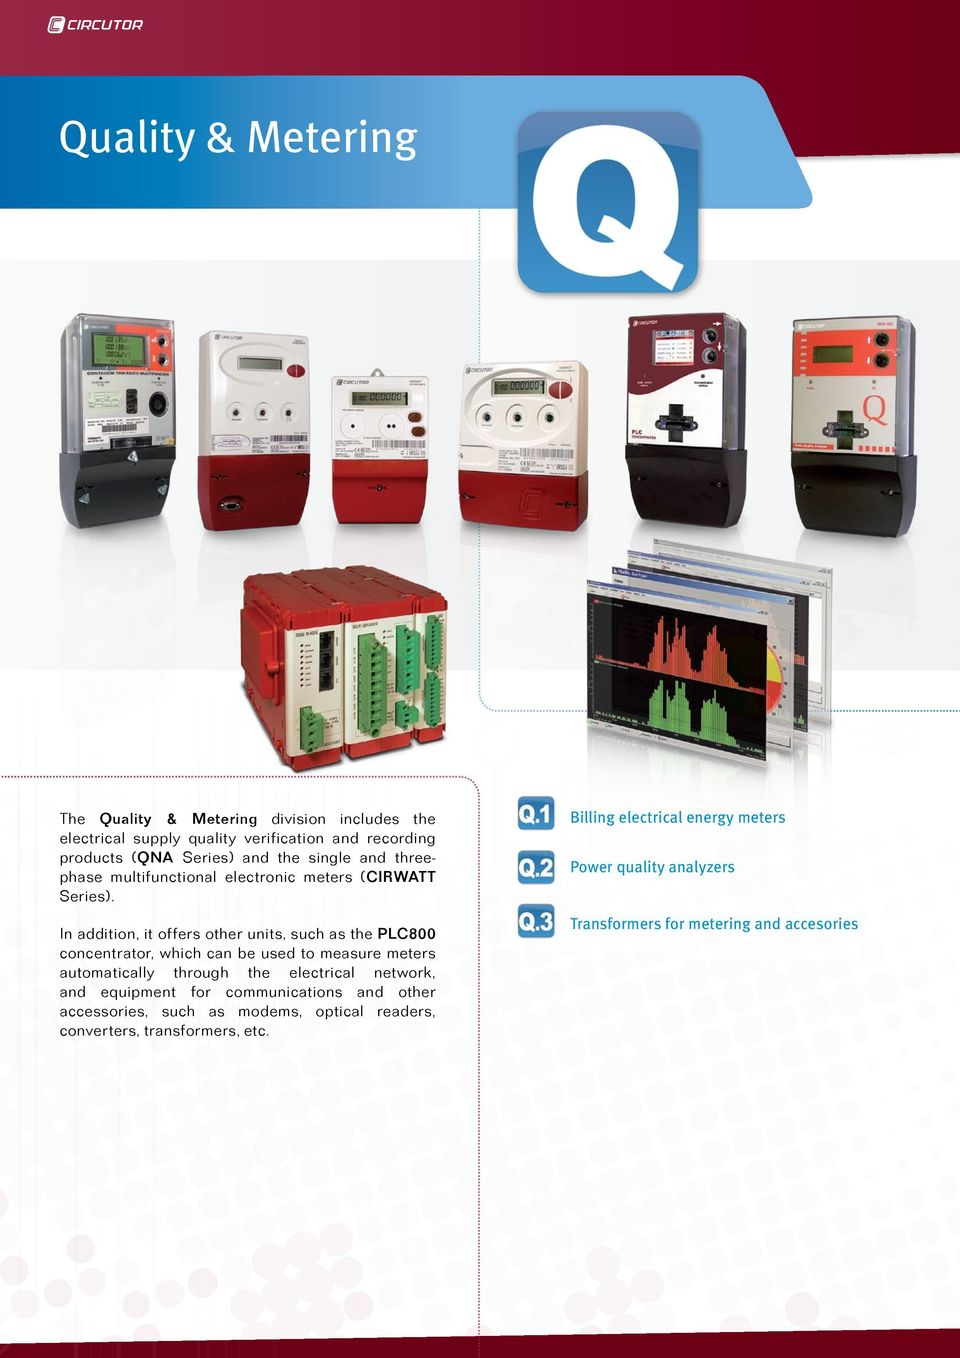 In addition, it offers other units, such as the PLC800 concentrator, which can be used to measure meters automatically through the electrical